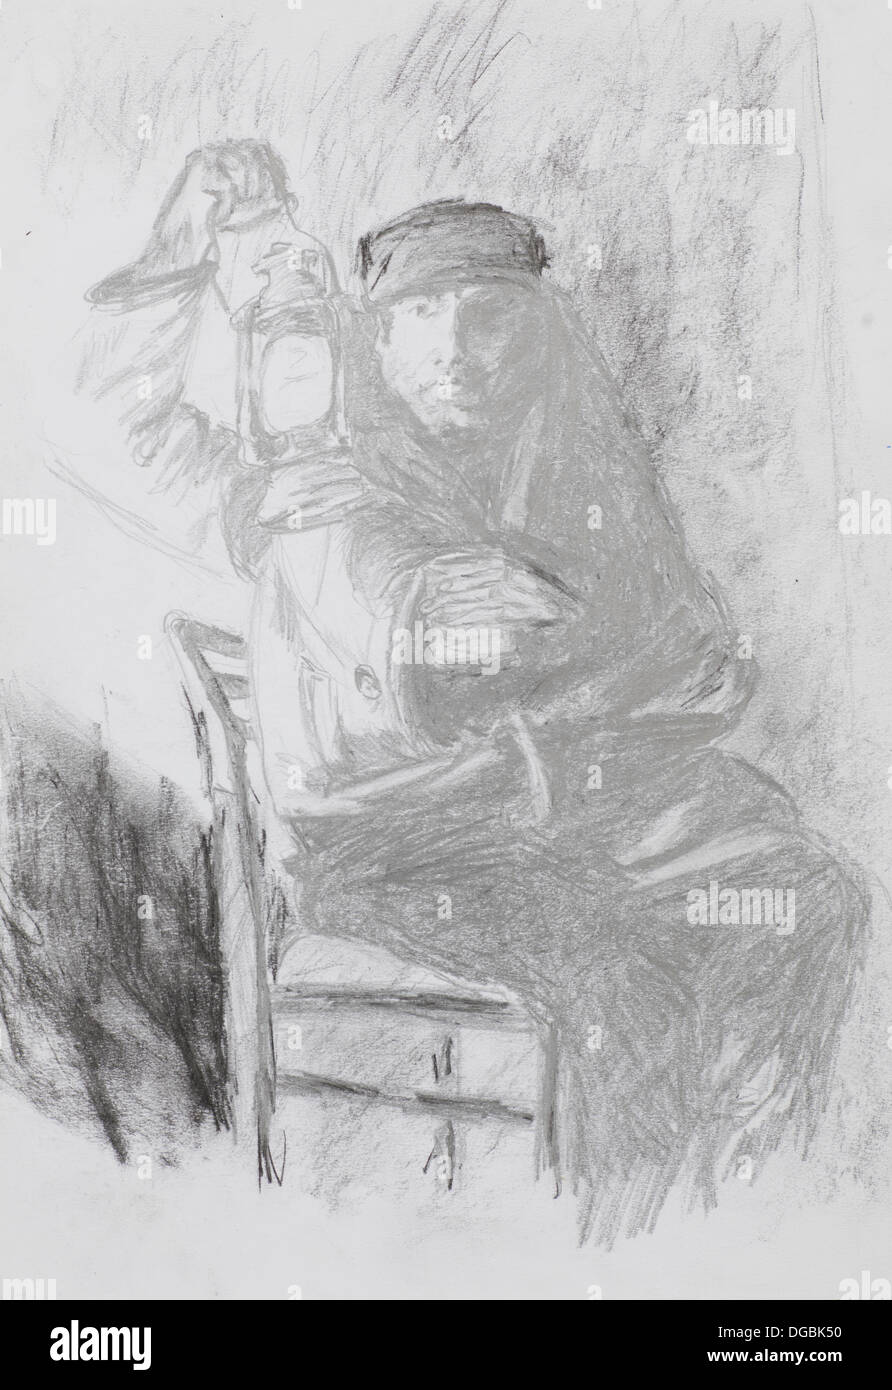 Hand Drawn Sketch Of Man Sitting On A Chair And Holding Vintage Lantern Pencil Technique